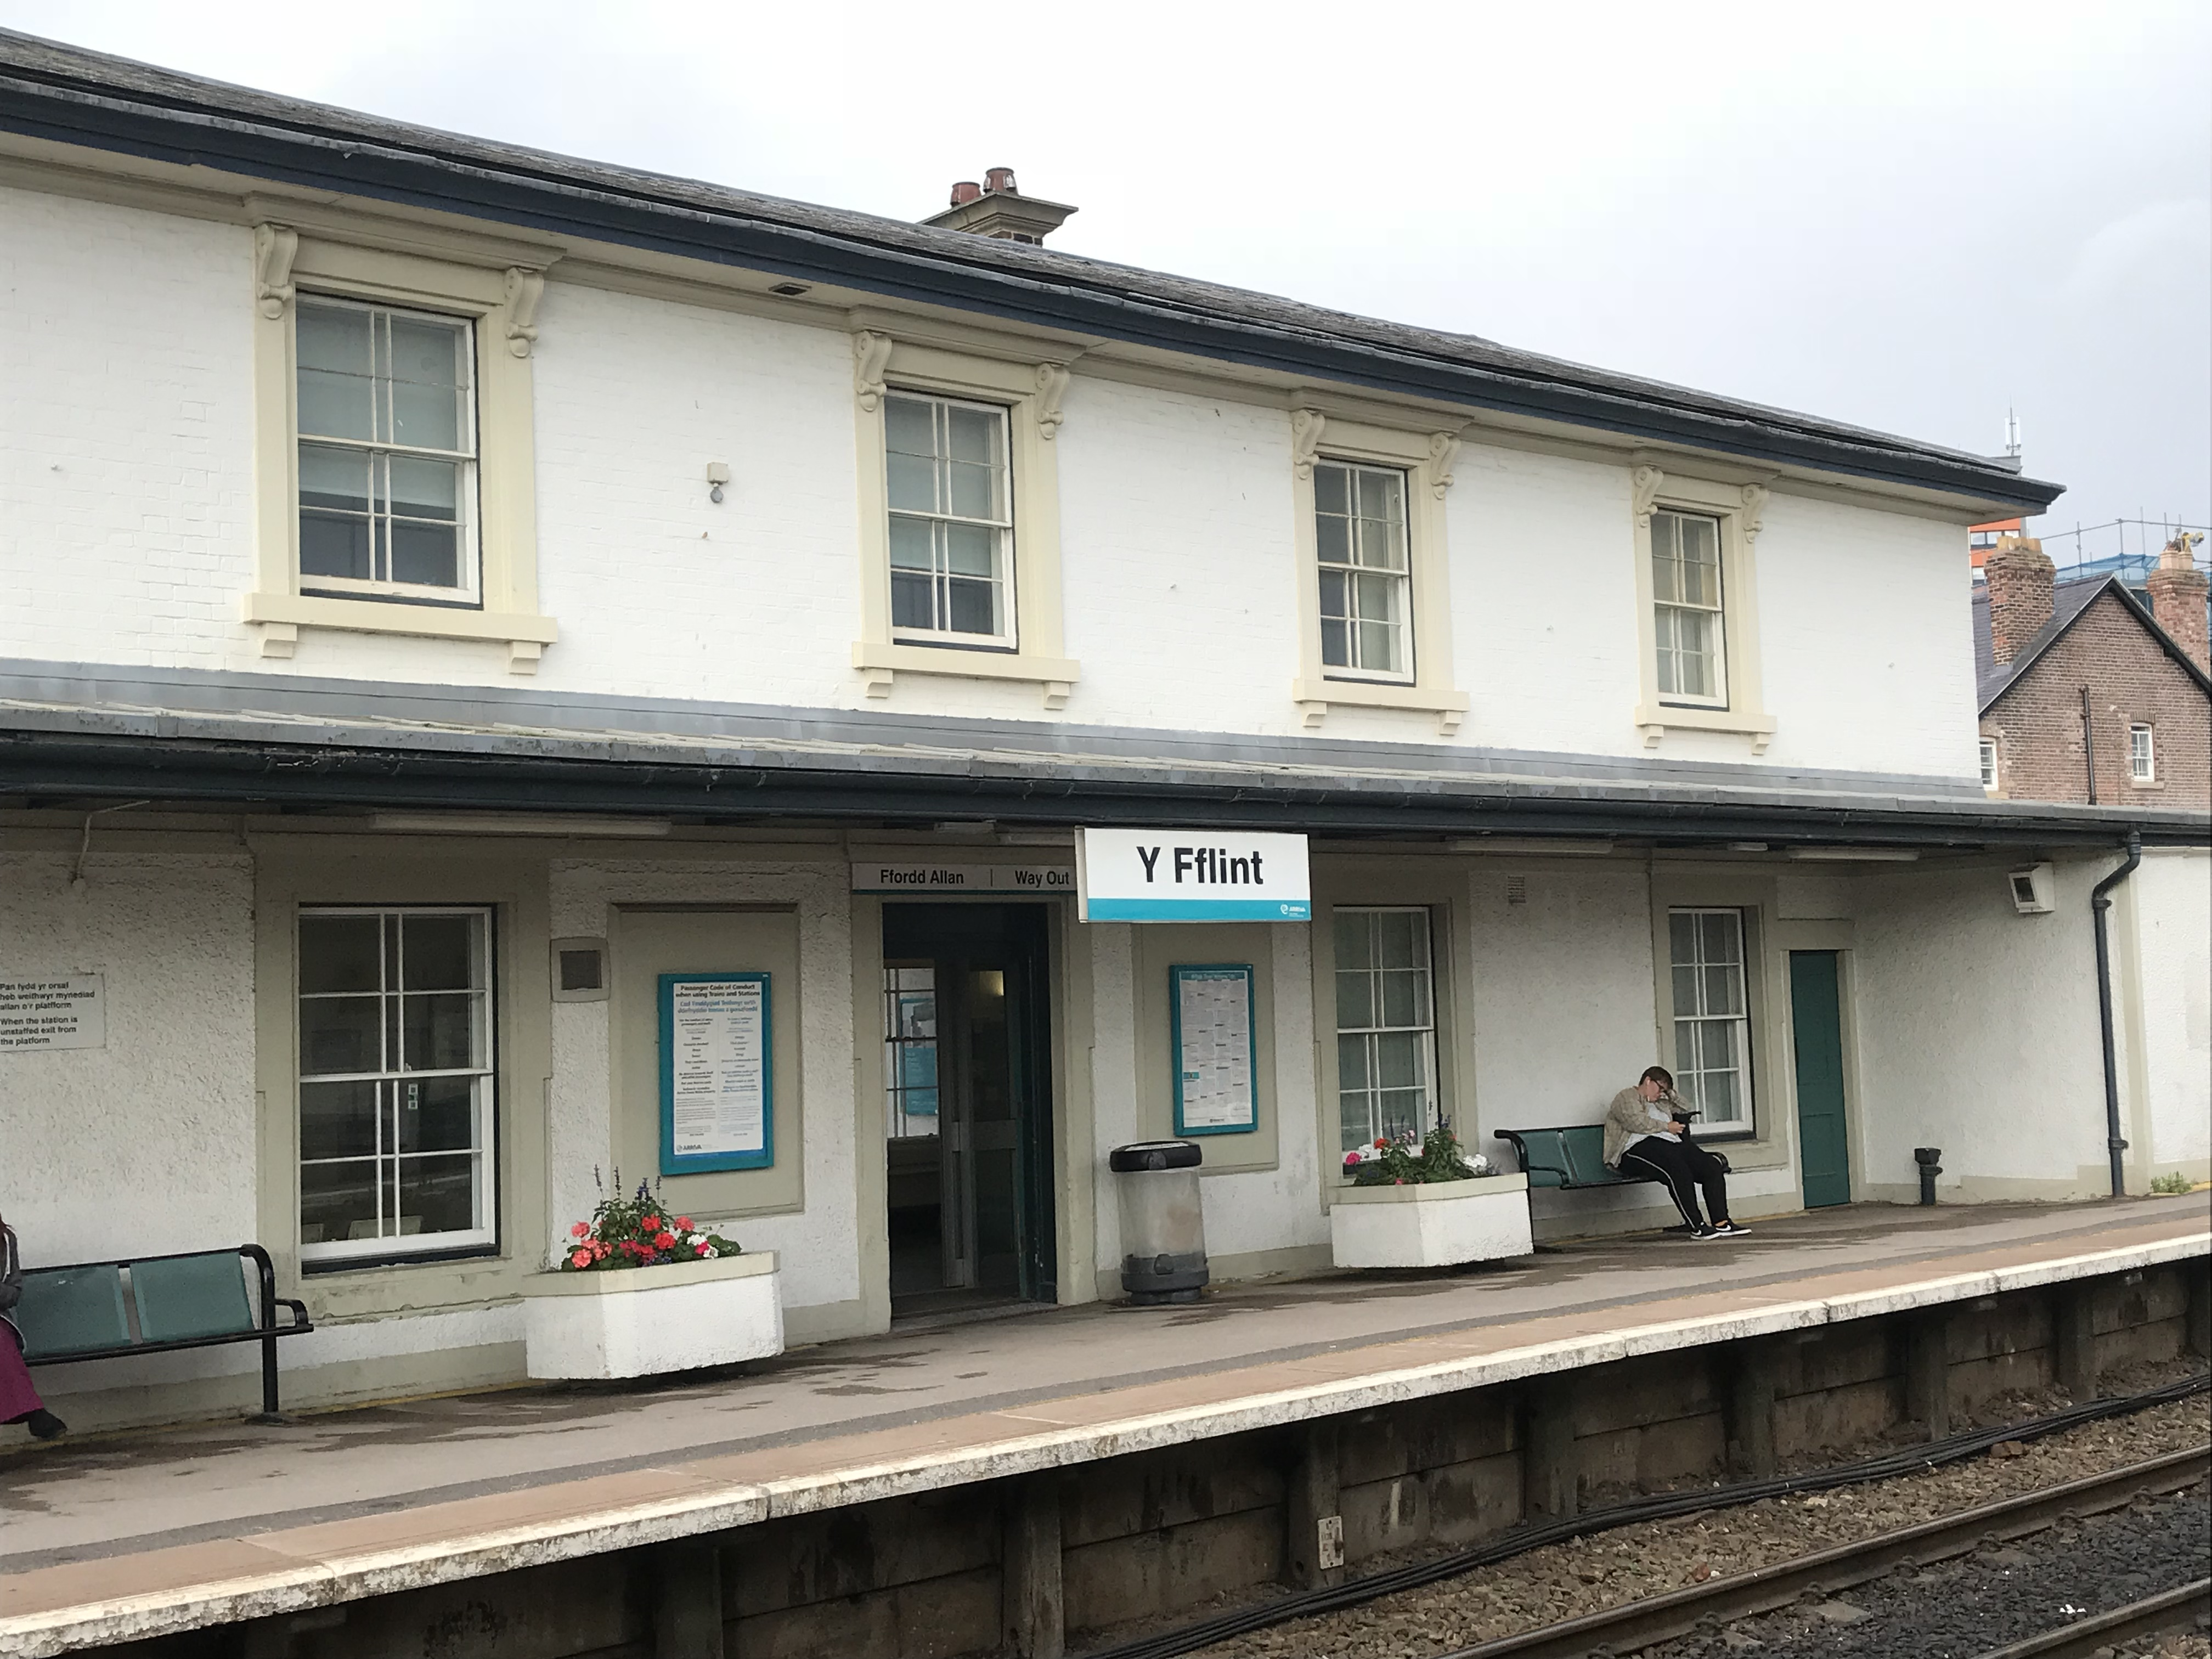 Flint Train Station, Flintshire, North Wales